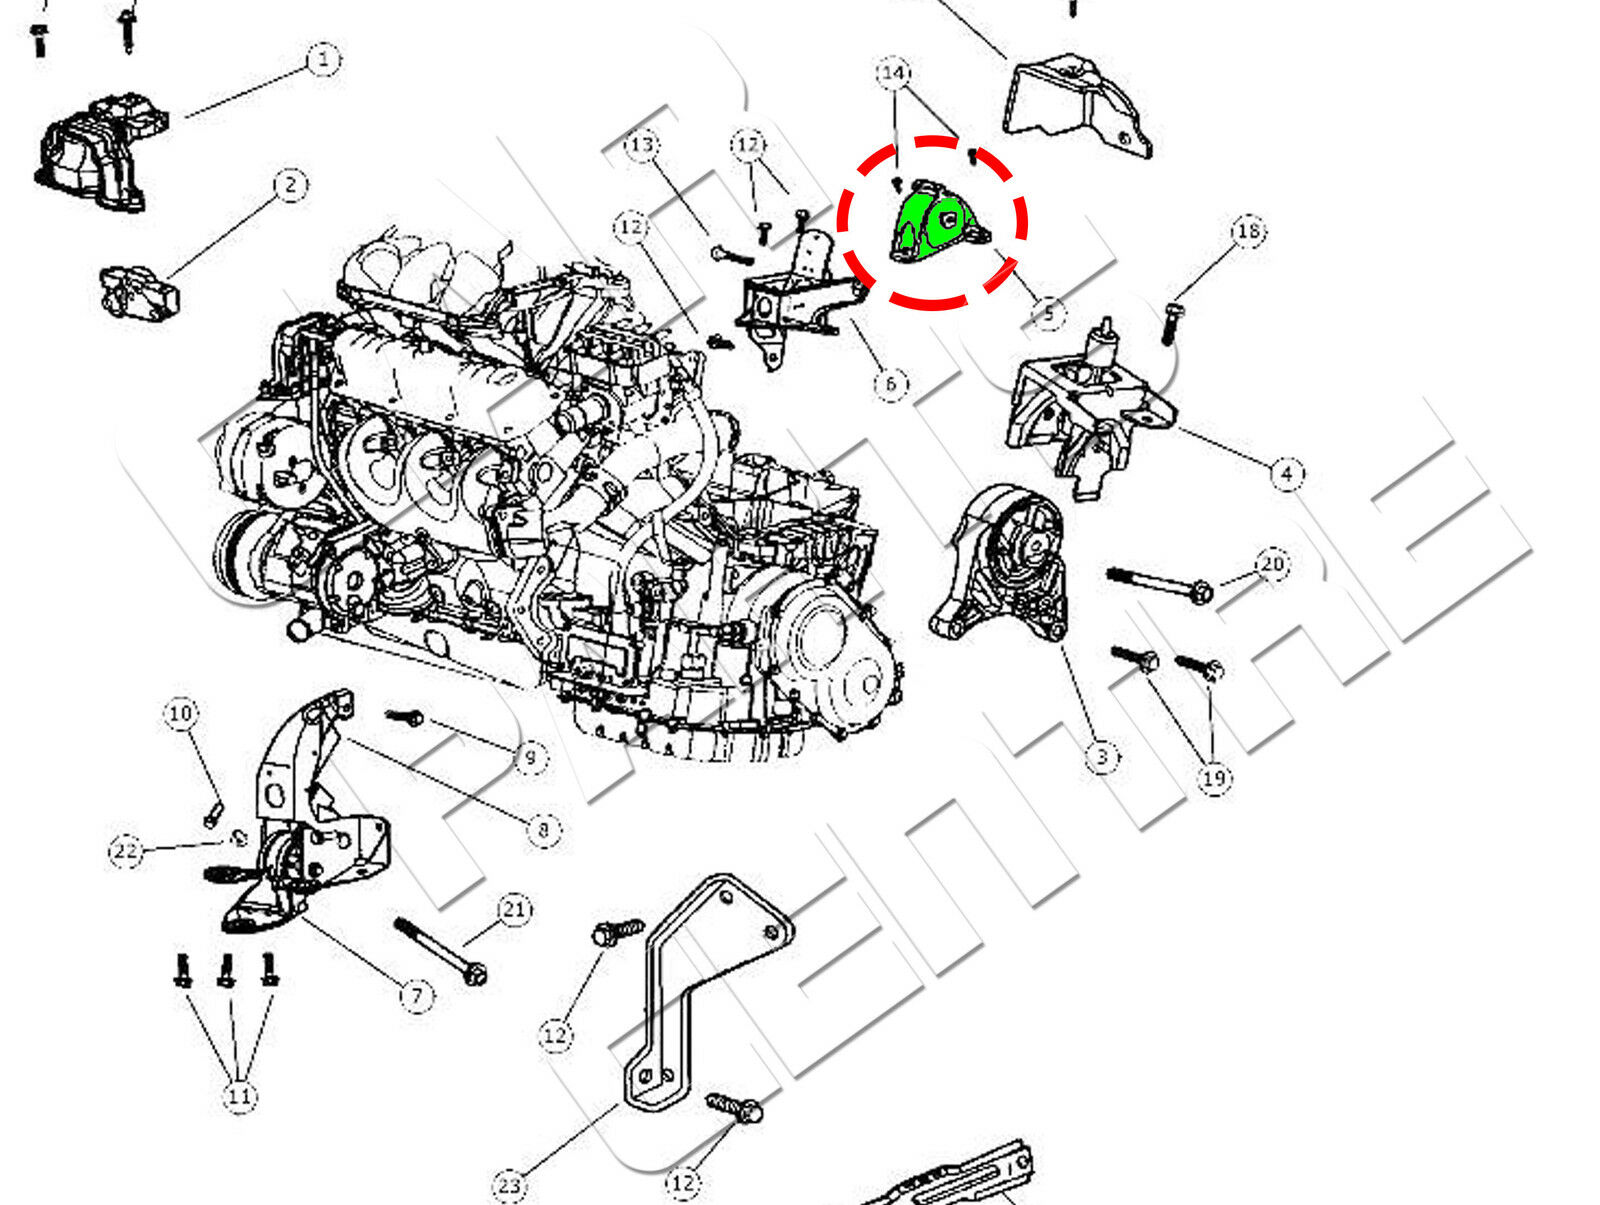 2004 chrysler sebring engine diagram data schema \u2022 chrysler town and country  chrysler sebring coolant